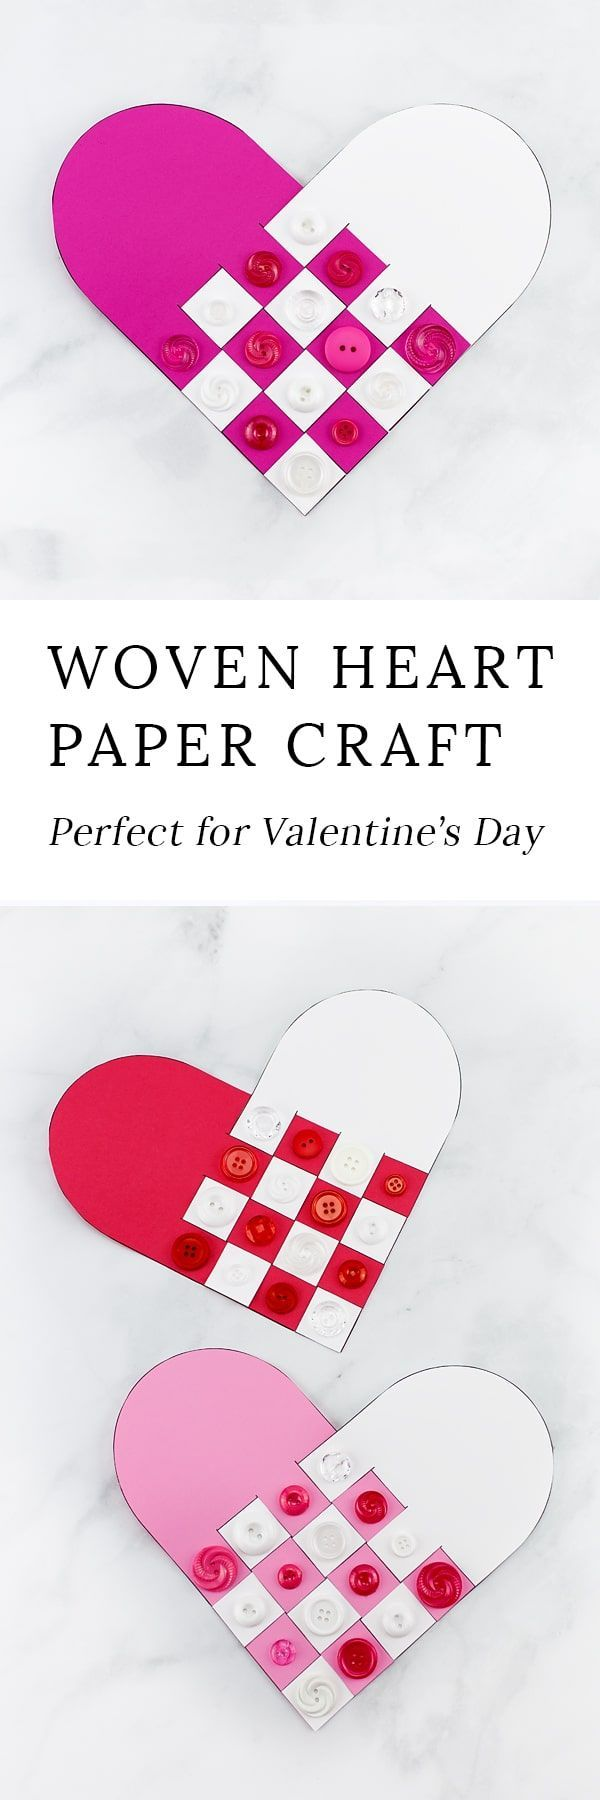 Reminiscent of Scandinavian Woven Hearts, this Woven Heart Craftis an easy and fun Valentine's Day craft for kids of all ages to make at school or home. via @https://www.pinterest.com/fireflymudpie/